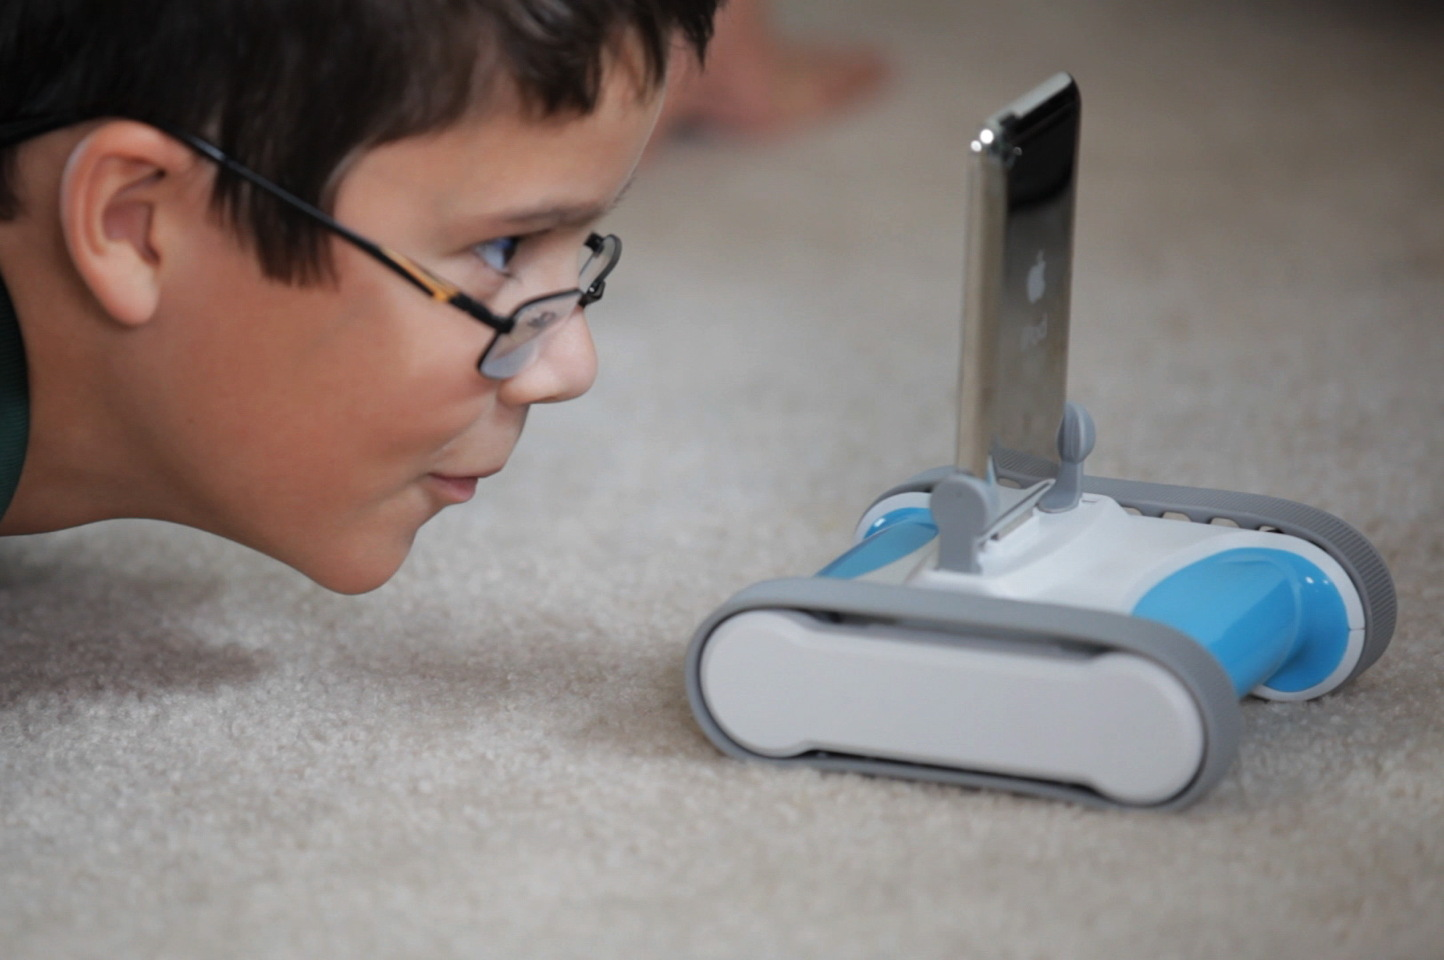 The Romo iPhone robot from Romotive